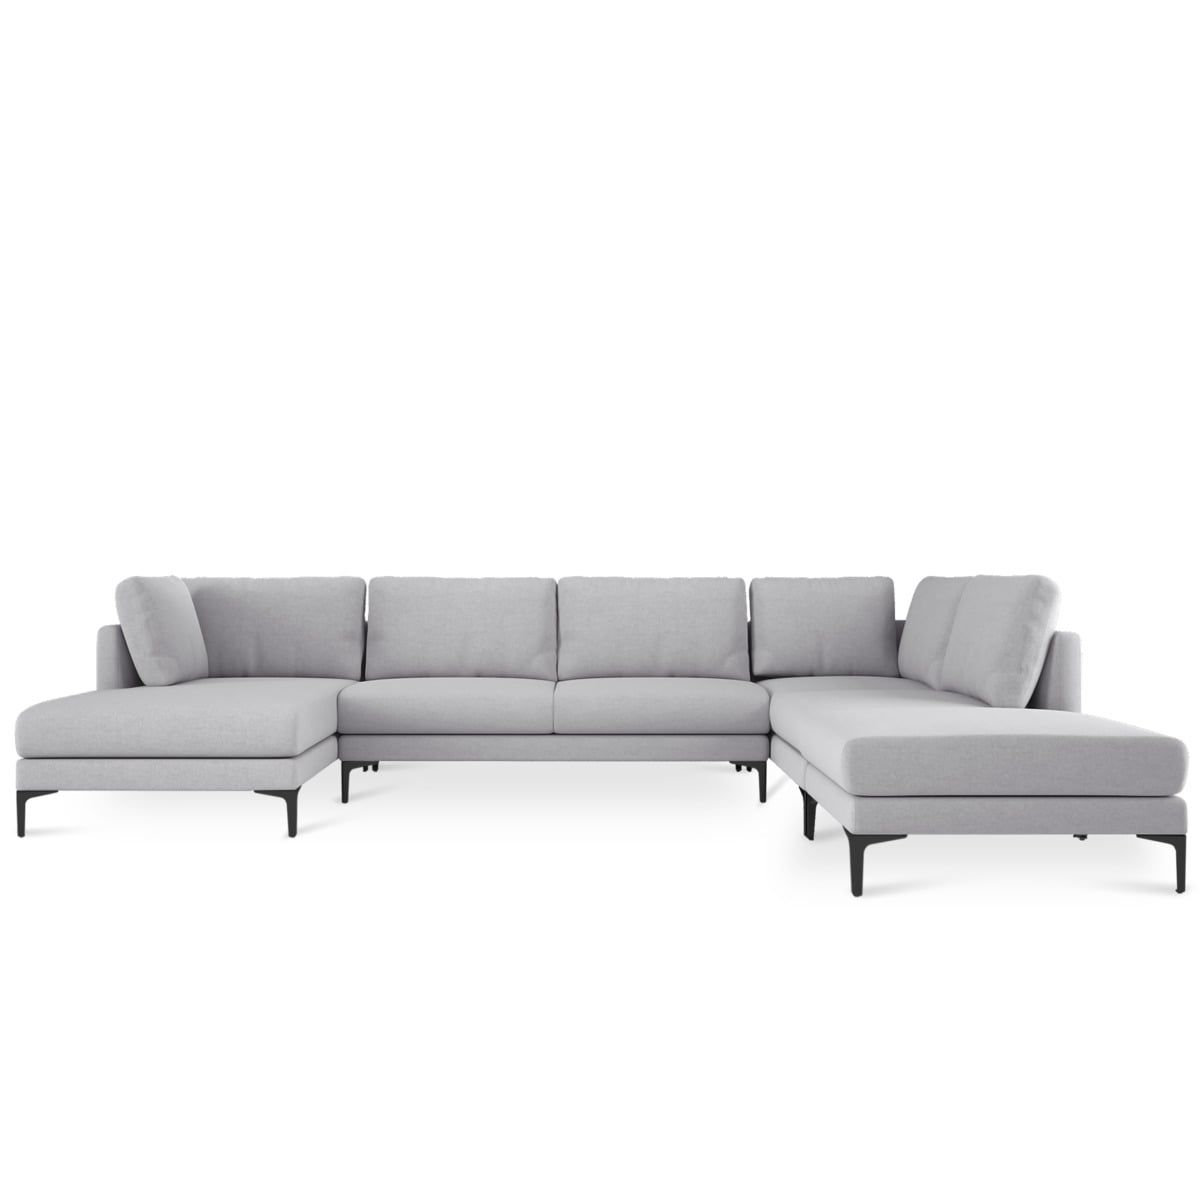 Adams U Shape Chaise Sectional Sofa Modern Gray Fabric 134 Modular Chaise Lounge Black Metal Leg Left Facing Castlery Modern Furniture Sectional Sofa With Chaise U Shaped Sectional Sofa U